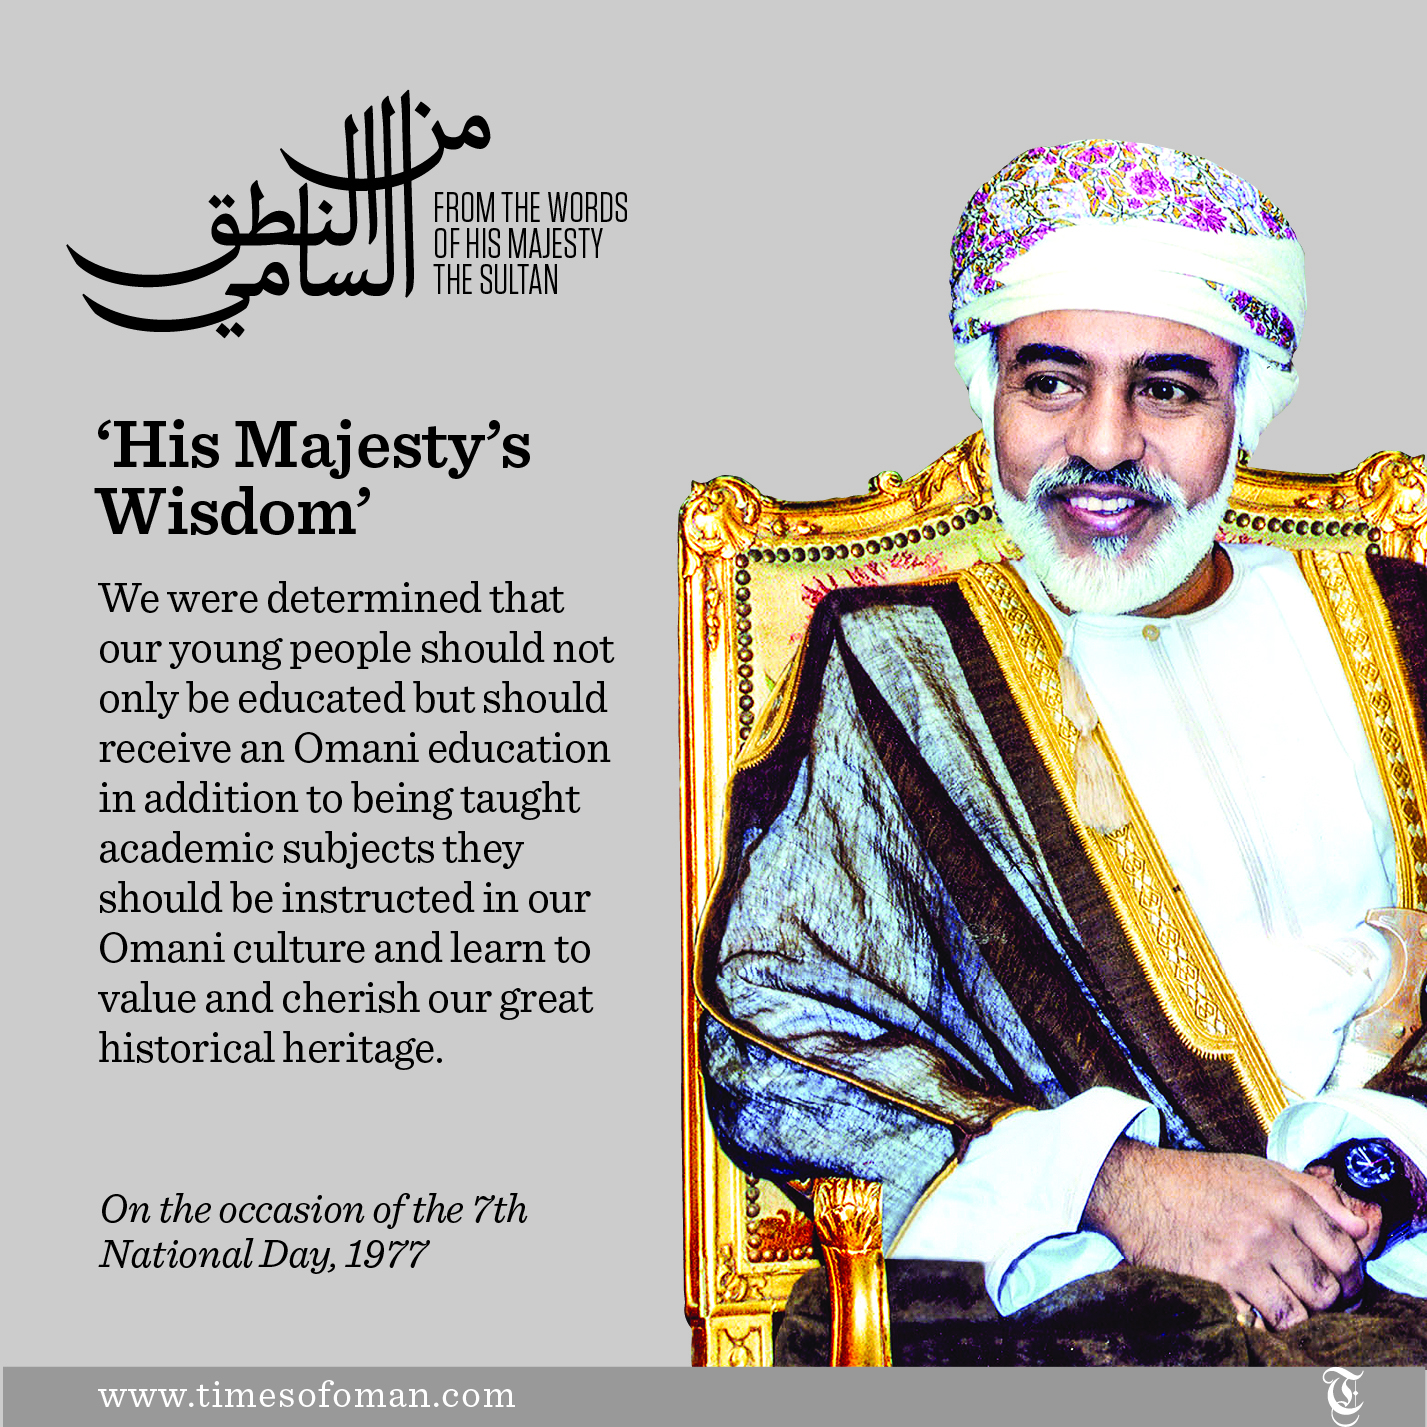 From the words of His Majesty Sultan Qaboos bin Said